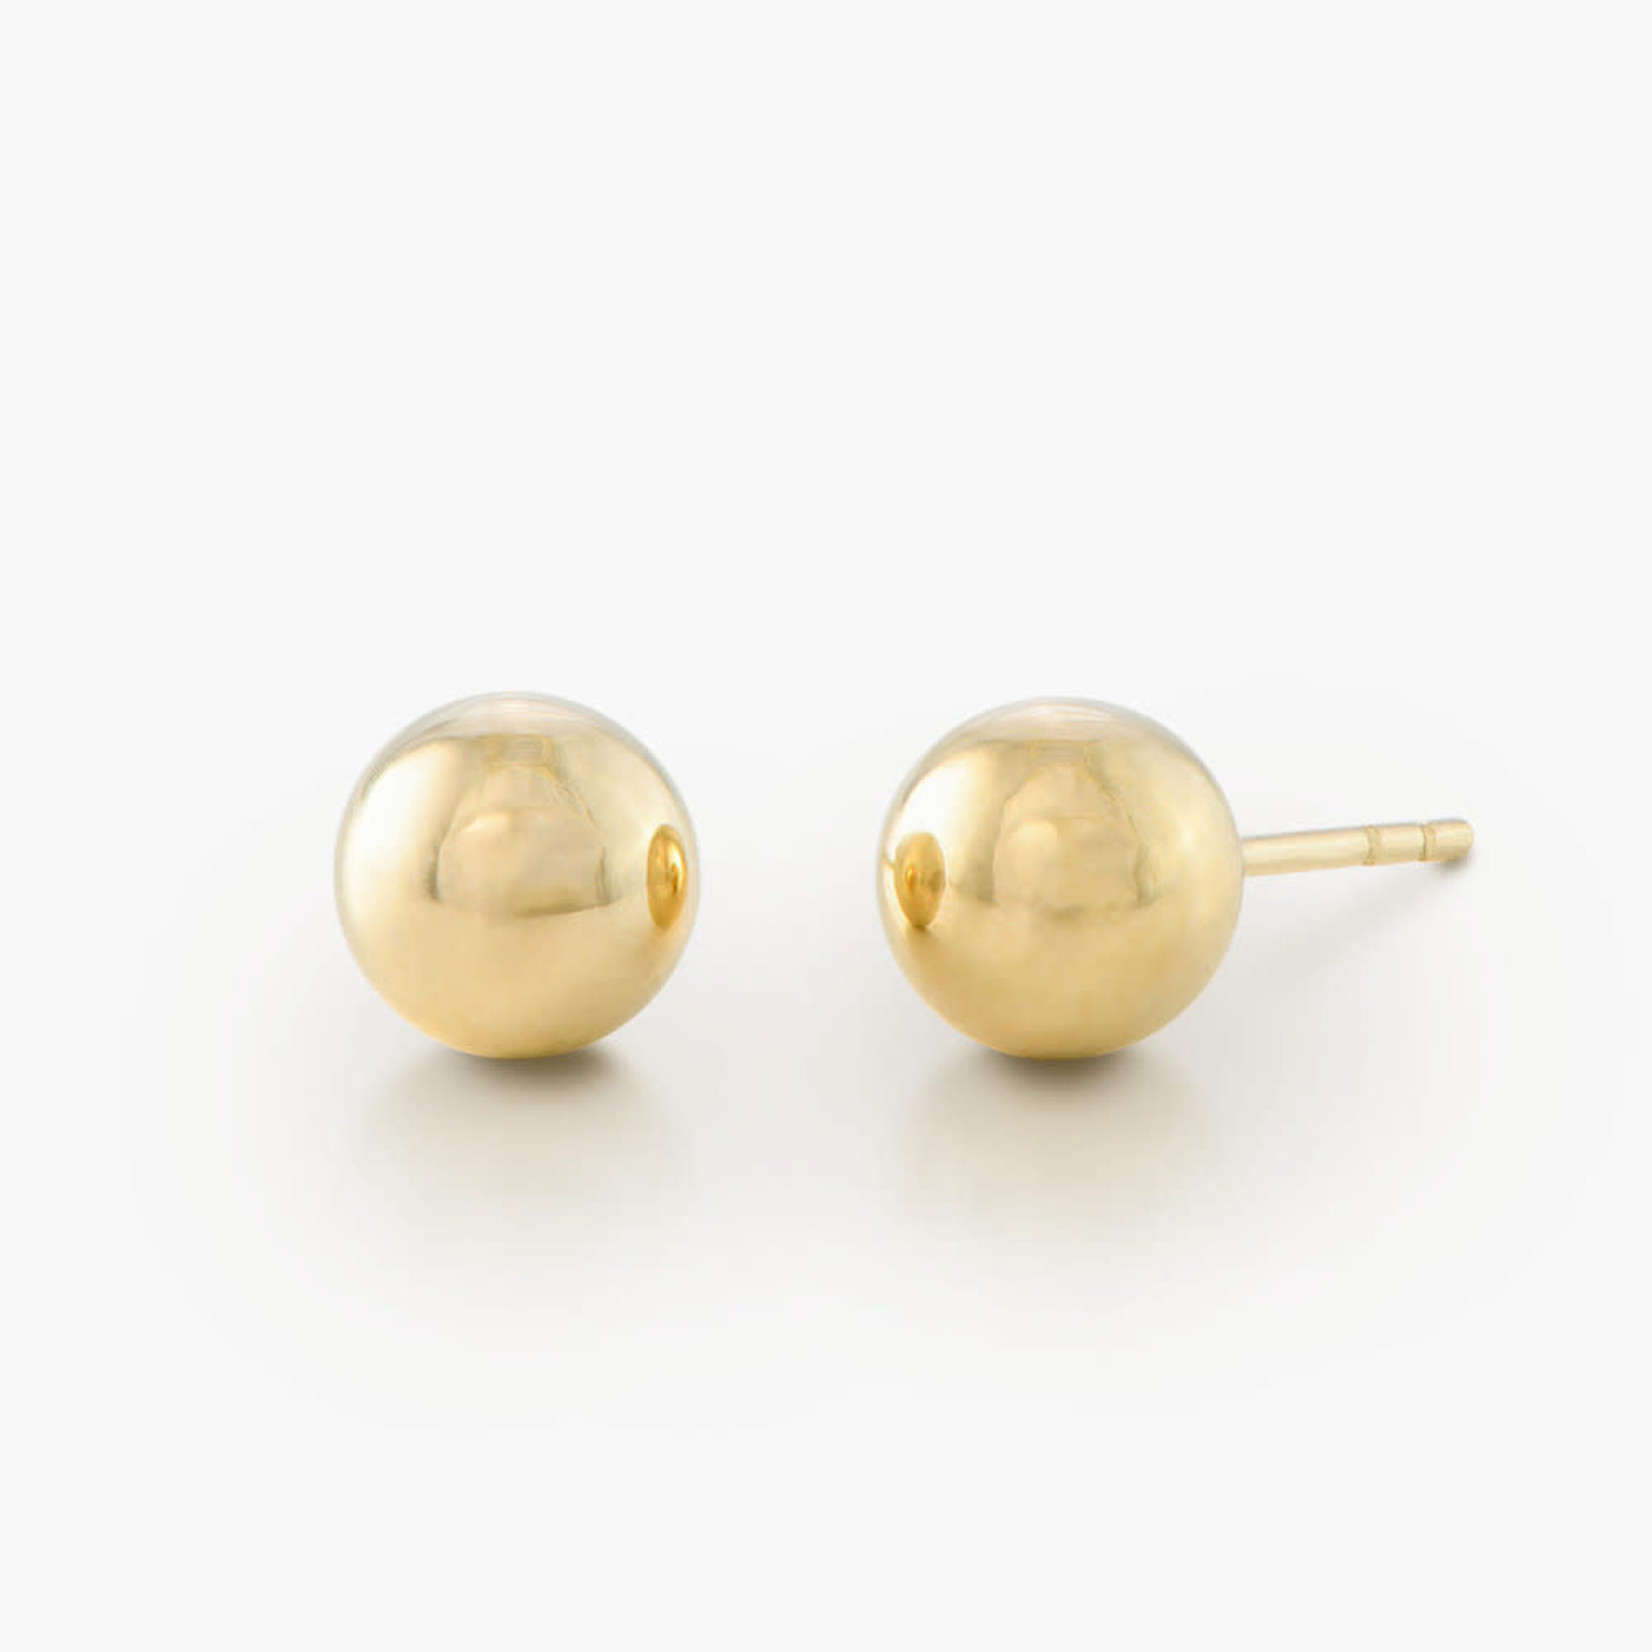 14KY Gold 4mm Round Ball Stud Earrings